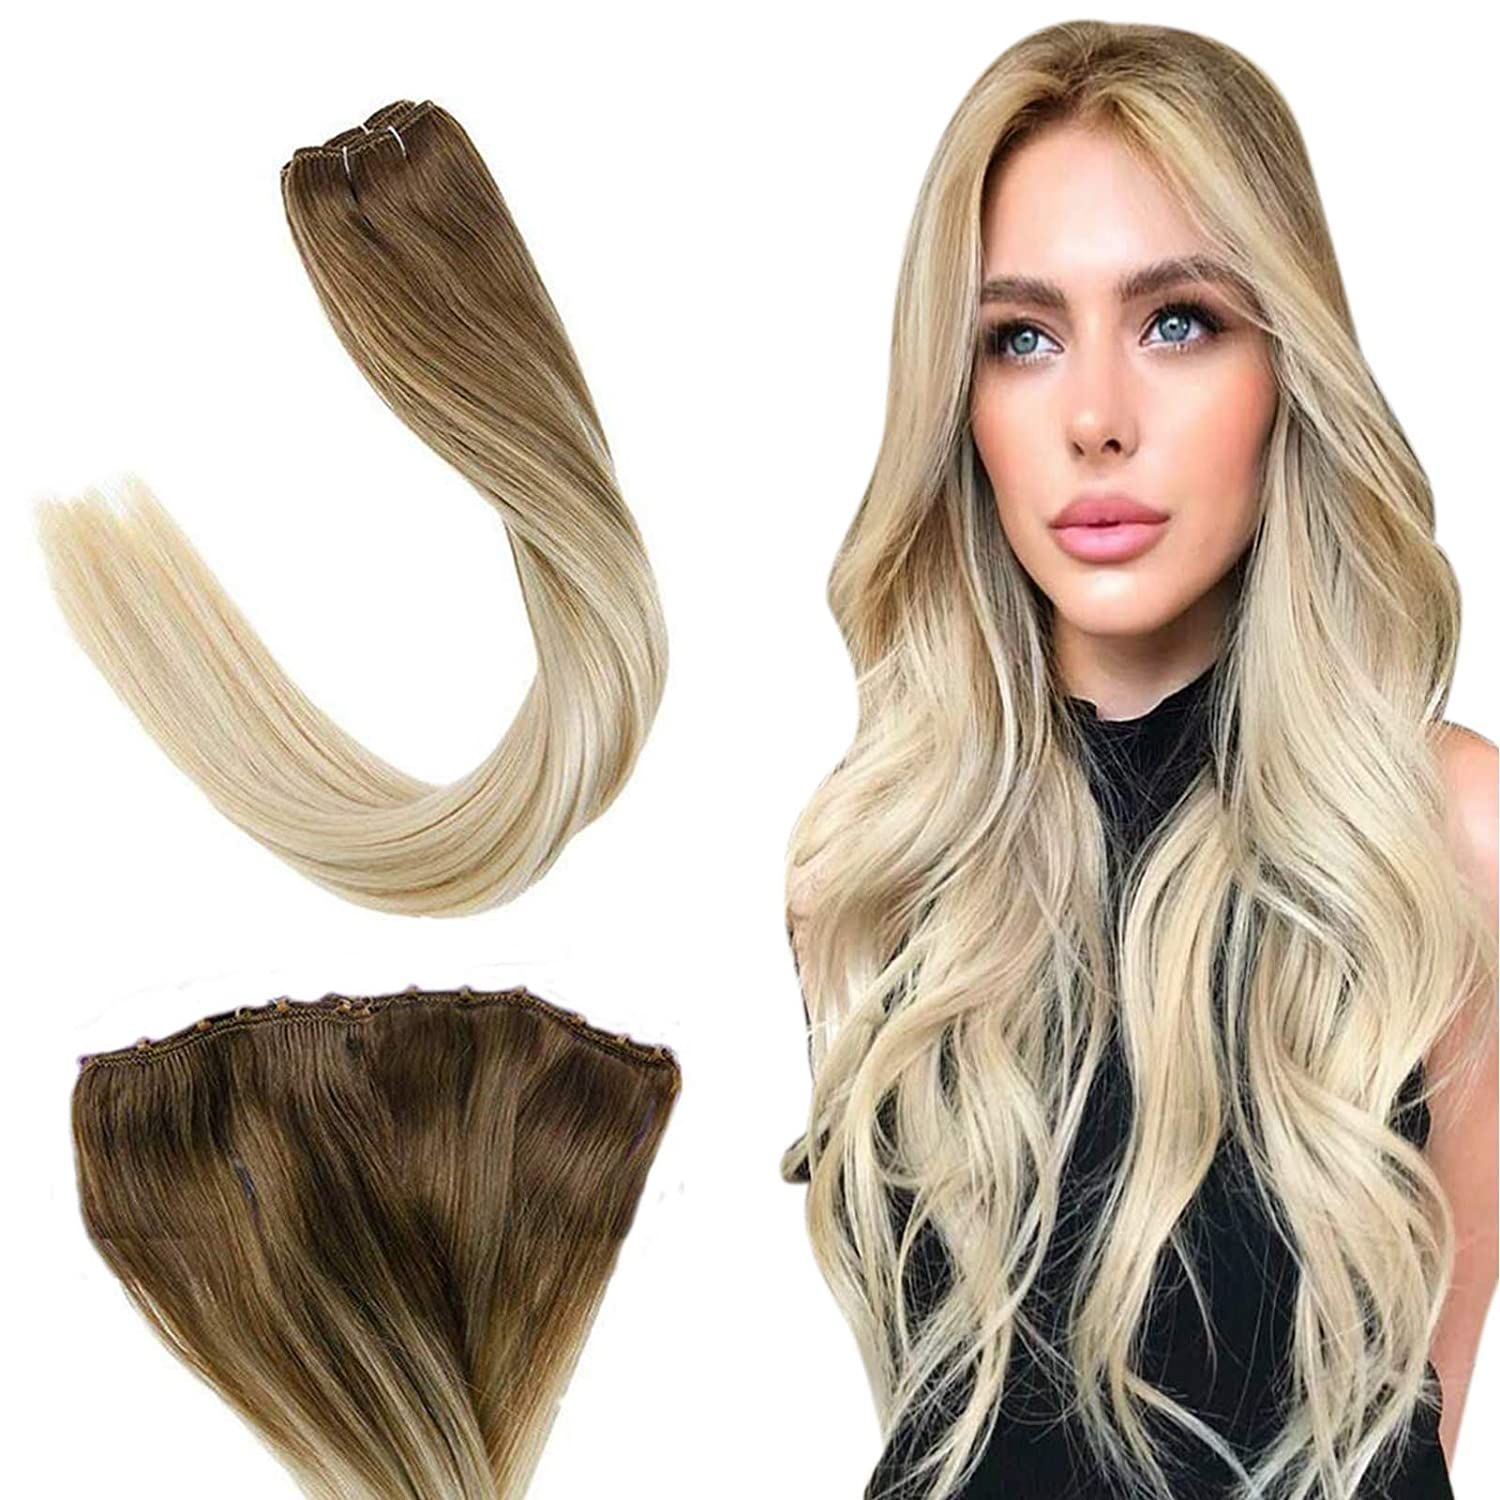 ee34949d97ac75e833199be2c7fe19e3 - How Much Is It To Get Hair Extensions Done Professionally